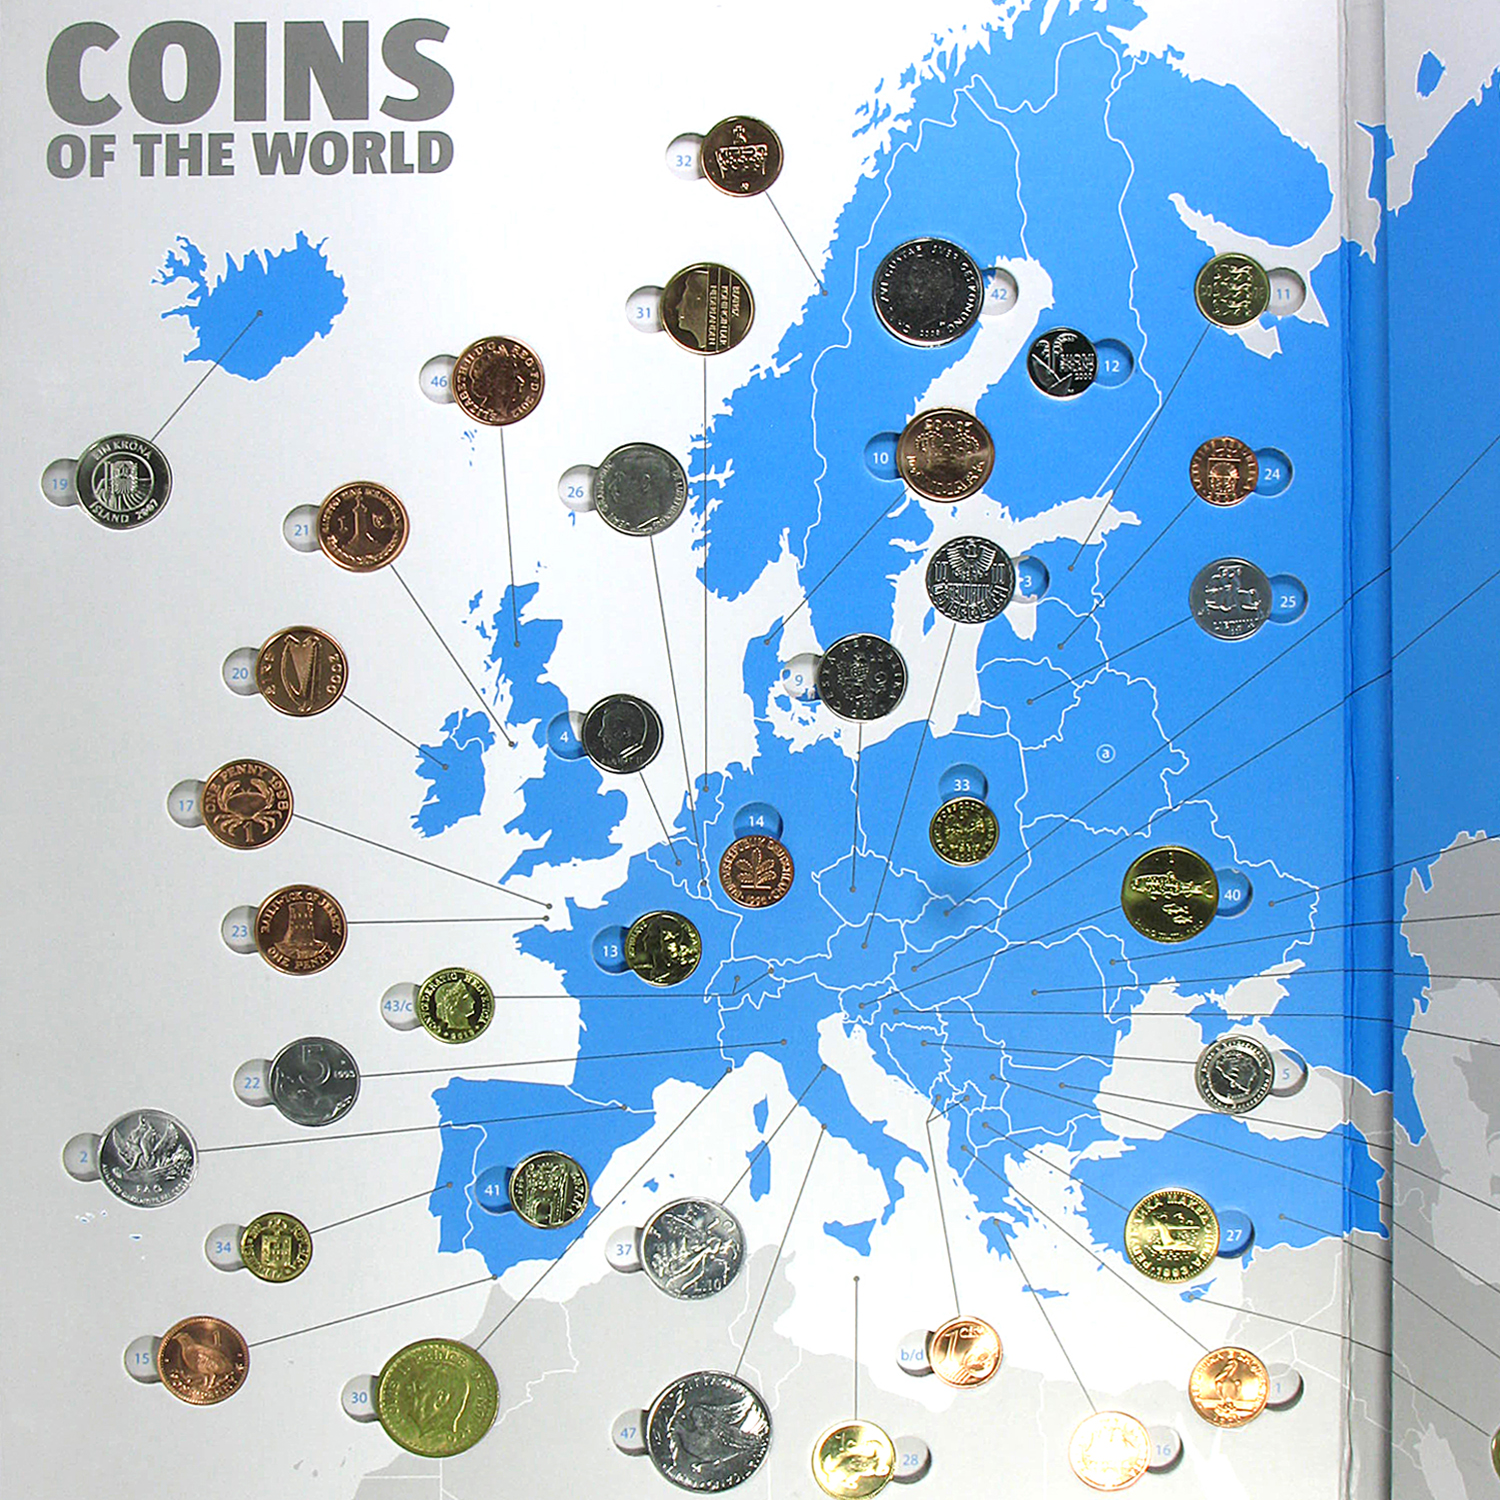 Coins of the World - Europe (48 coins)